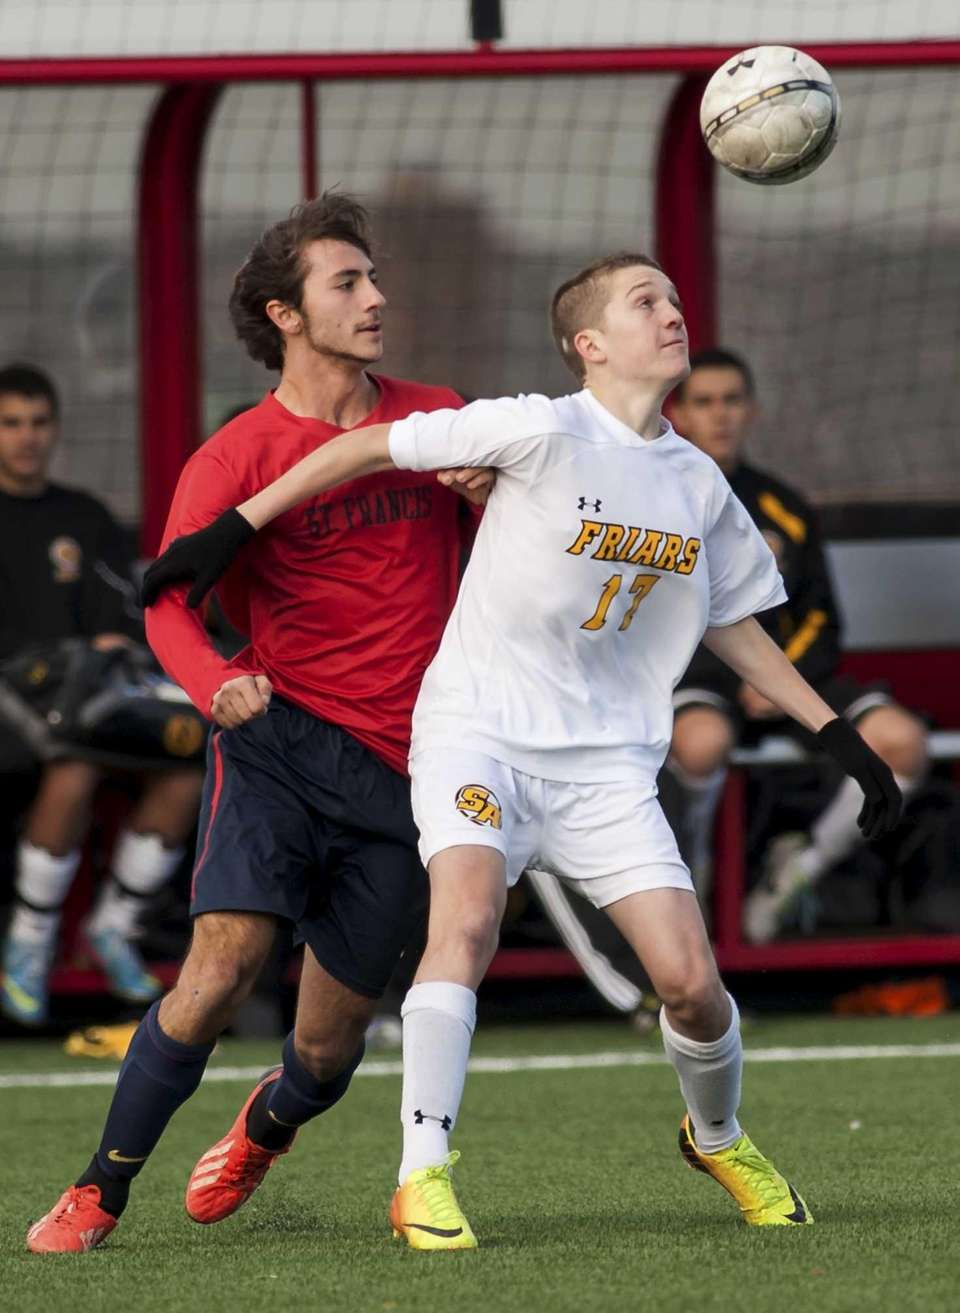 St. Anthony's John Foley, right, fights for the